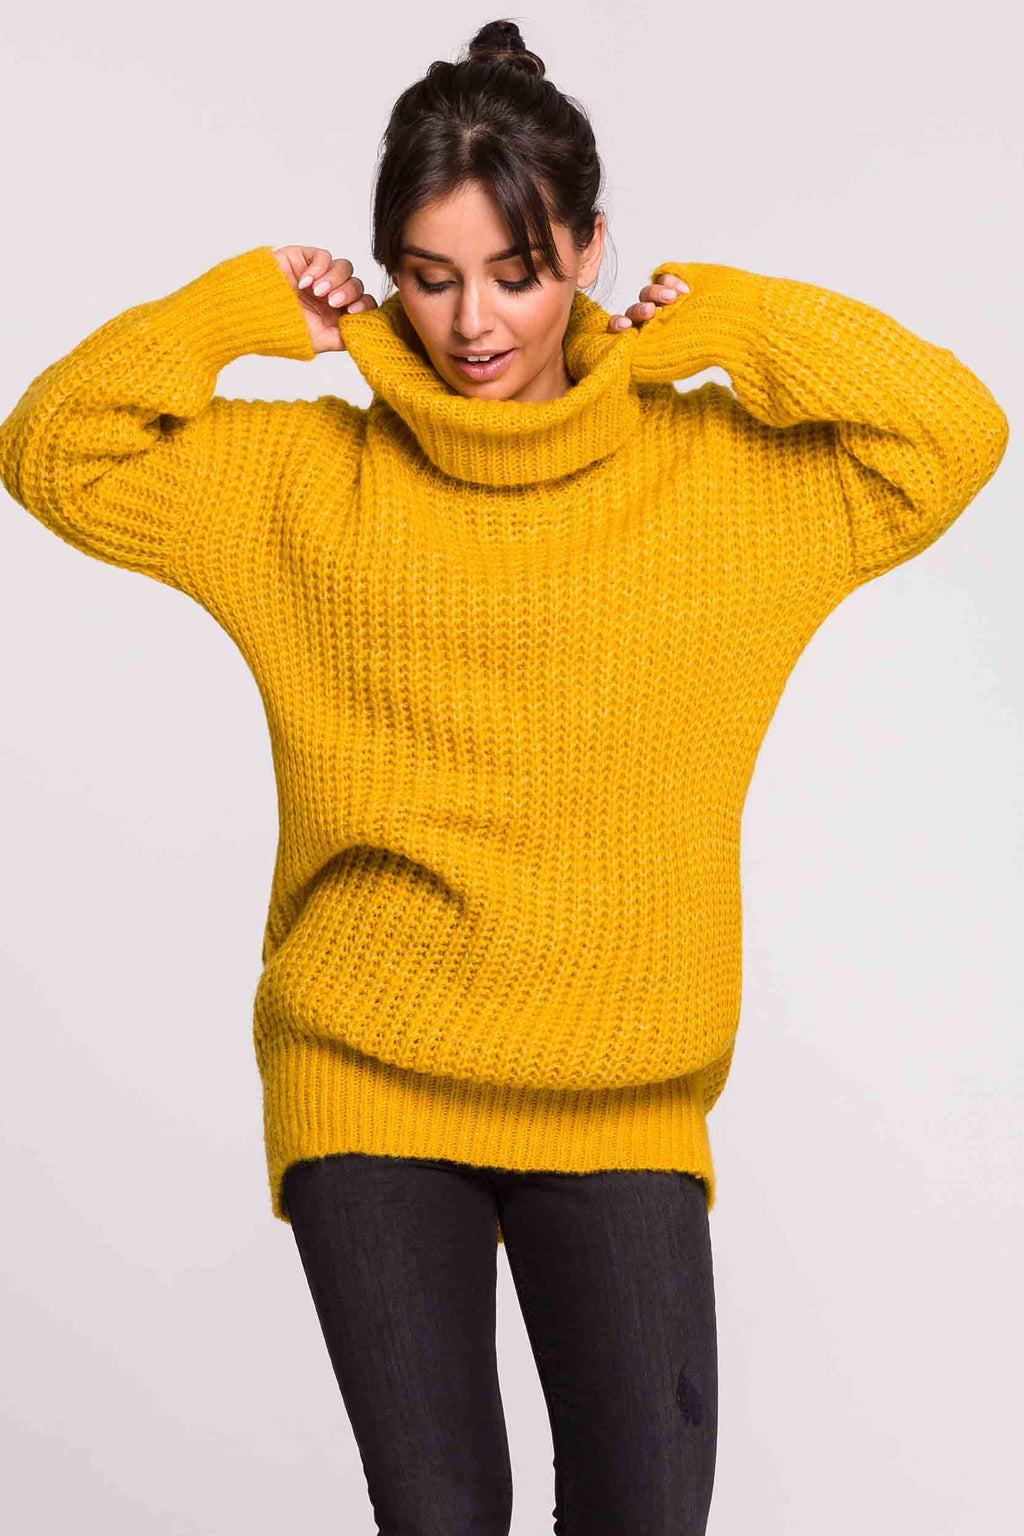 Honey Mustard Turtleneck Sweater Dress - So Chic Boutique